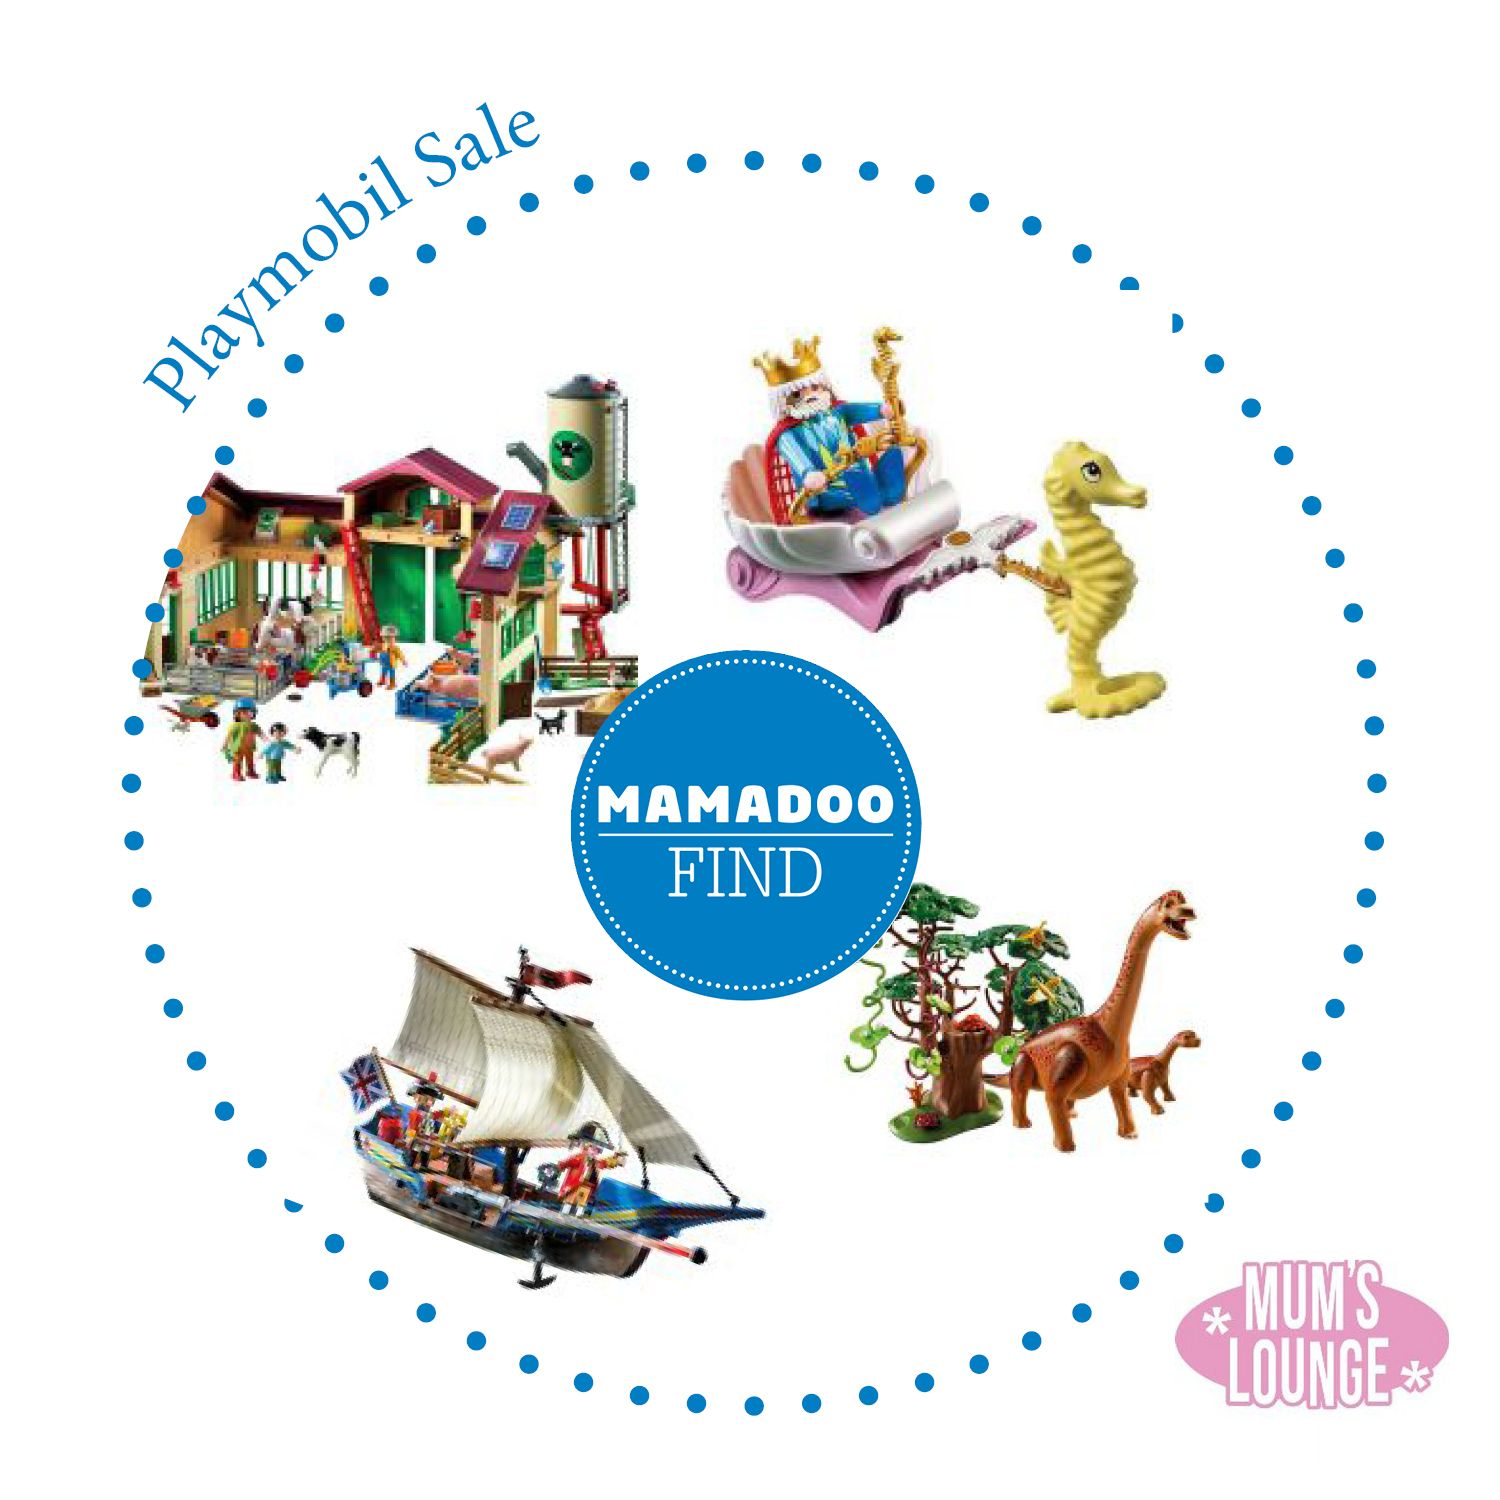 Up to 40% f a wide range of PLAYMOBIL toys over at MAMADOO NOW